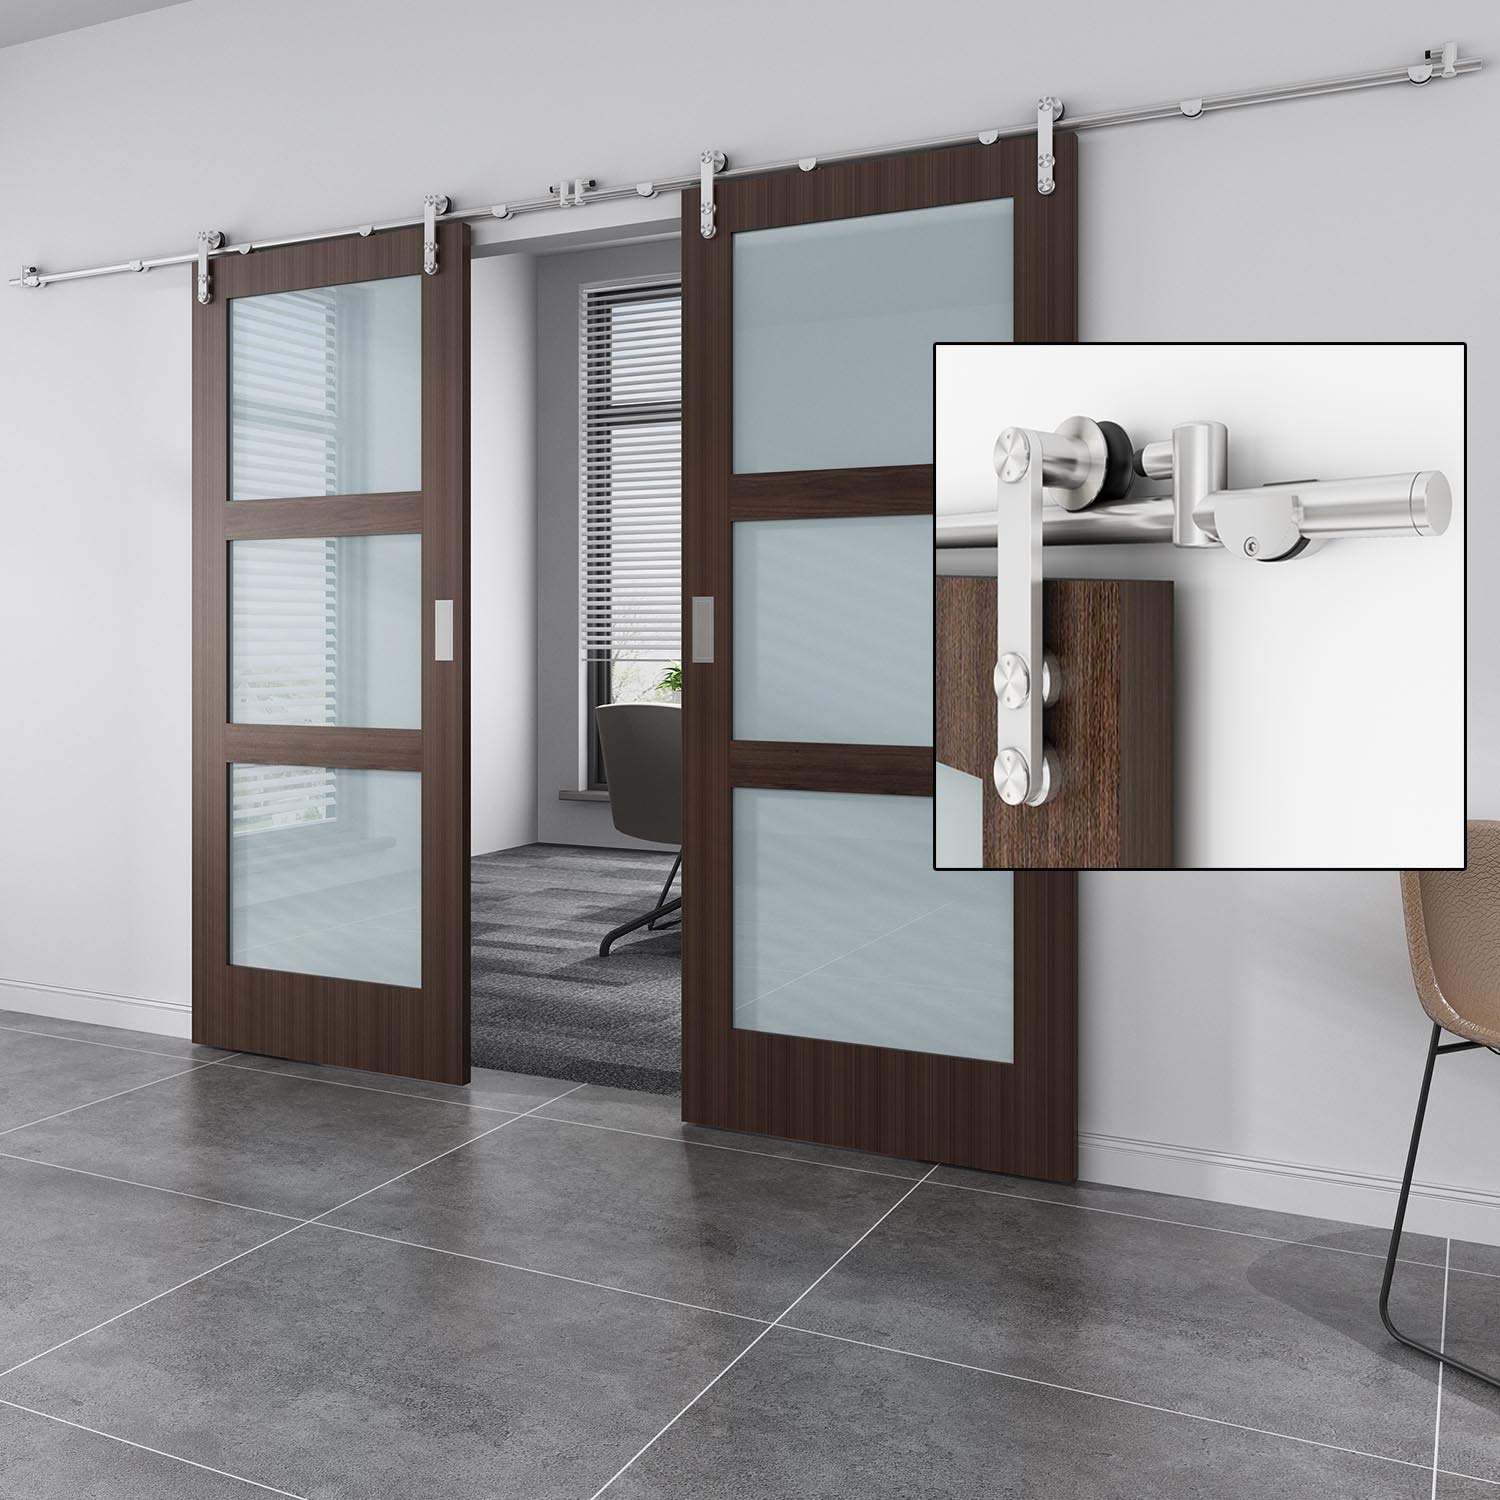 EaseLife 10 FT Stainless Steel Double Sliding Barn Door Hardware Track Kit - Heavy Duty - Anti-Rust - Slide Smooth Quiet - Easy Install- Fit Two 24''~30'' Wide Door - 10FT Track Double Door Kit